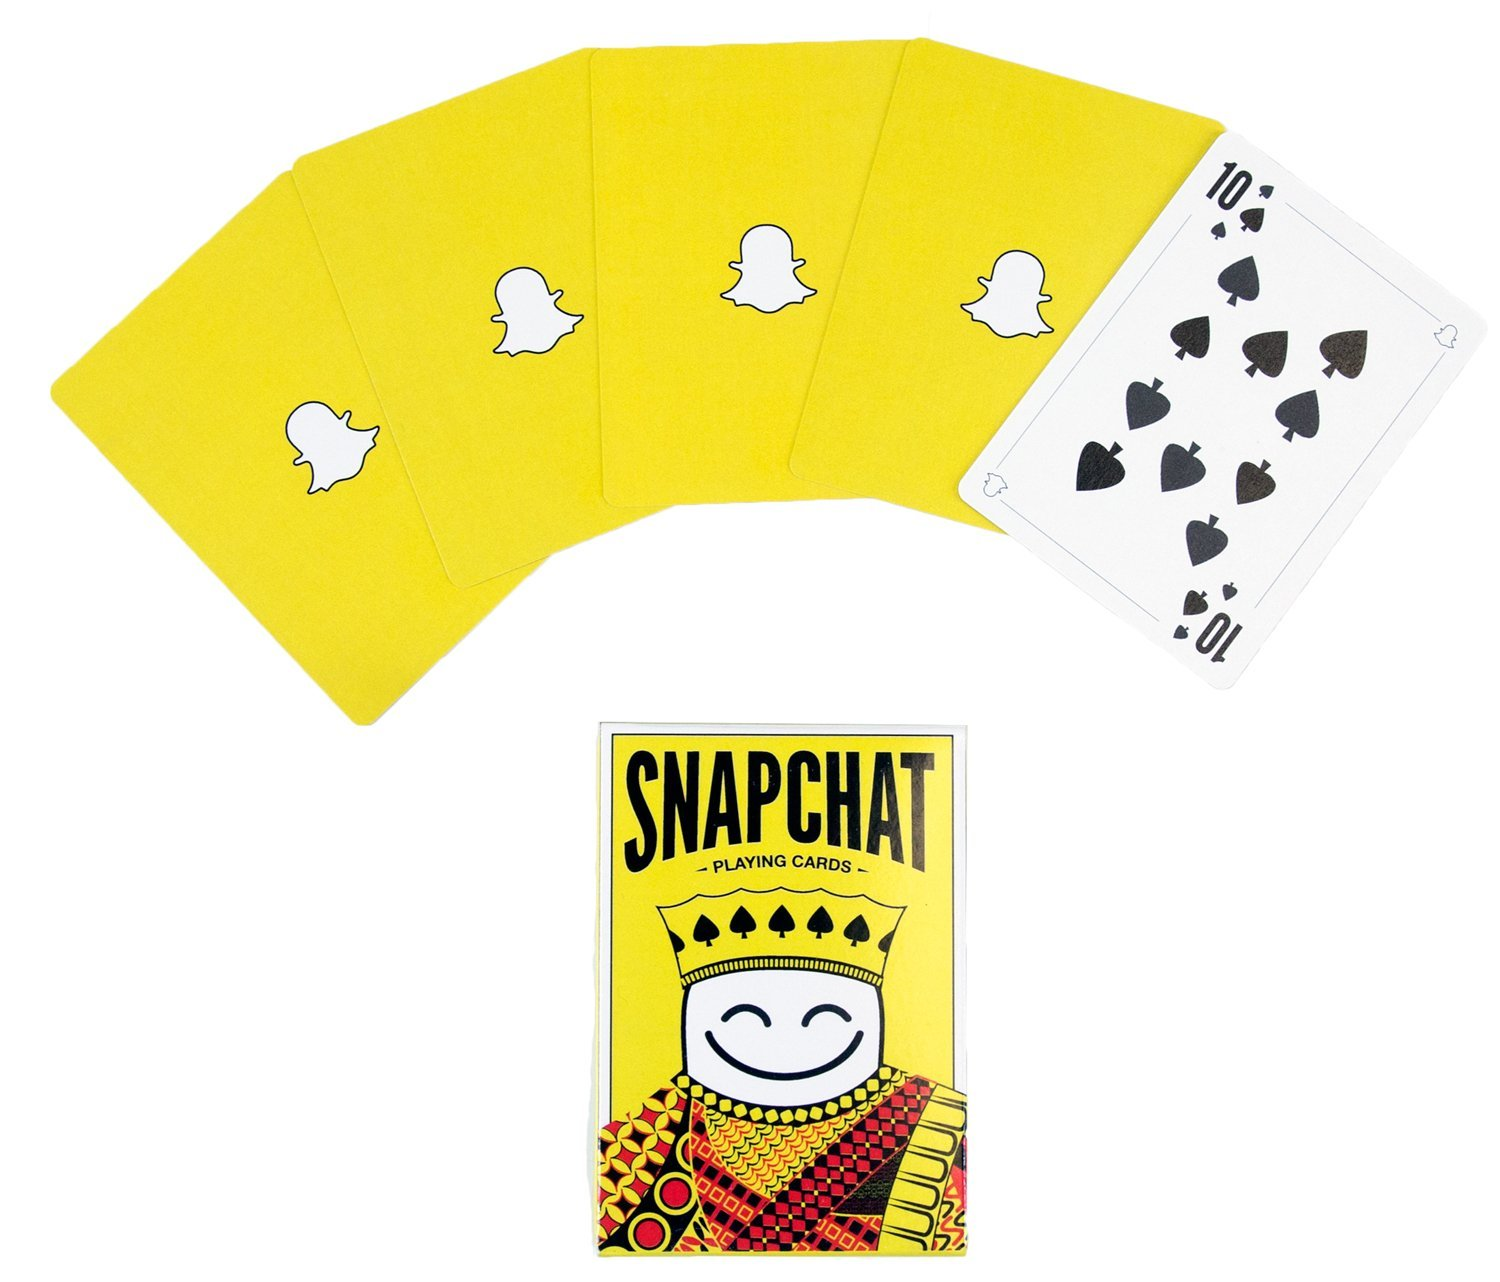 snapchat playing cards